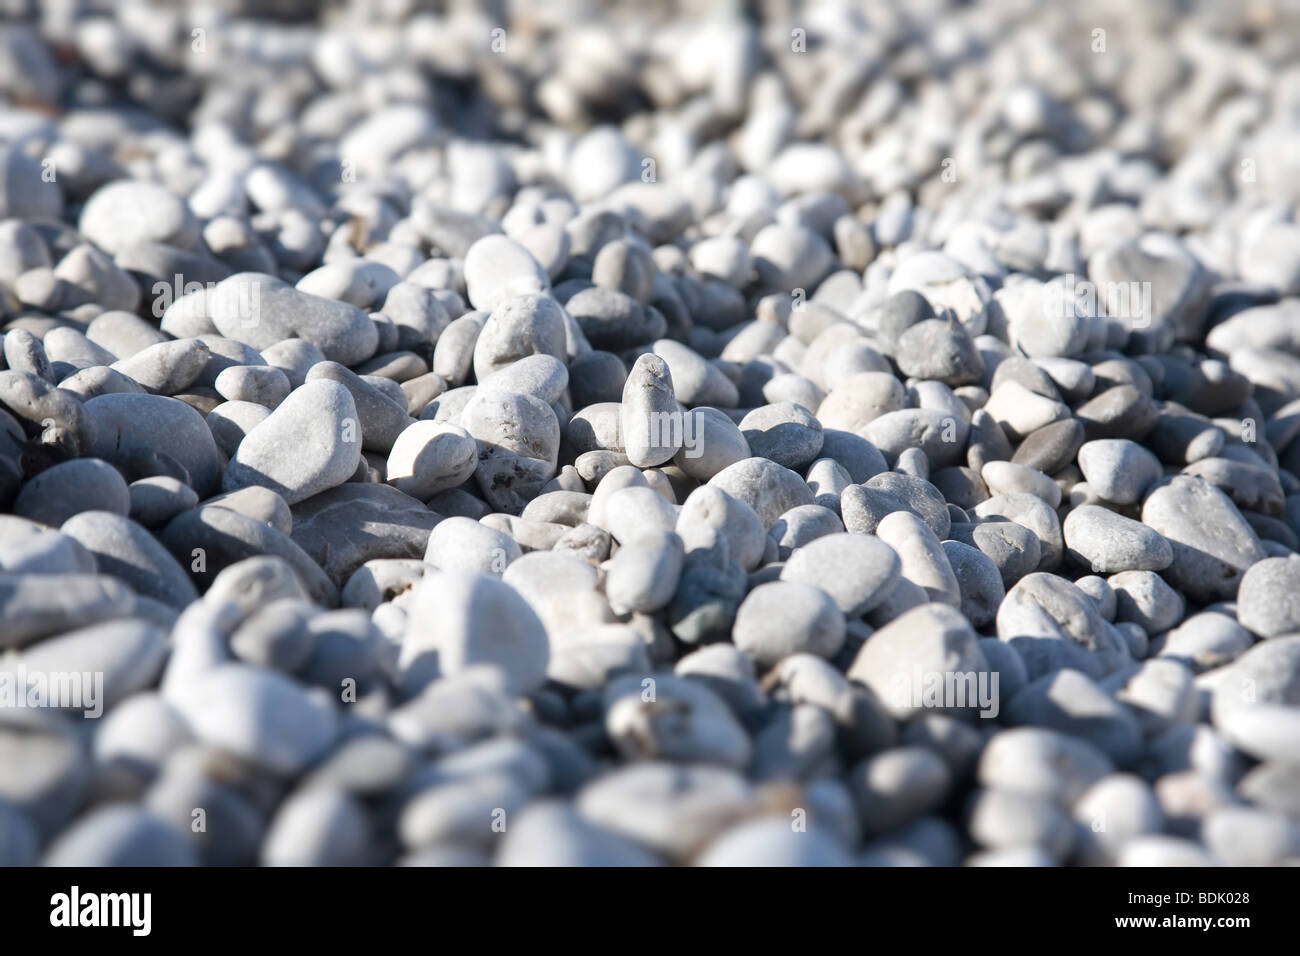 Small pebbles. Shallow dof effect. - Stock Image